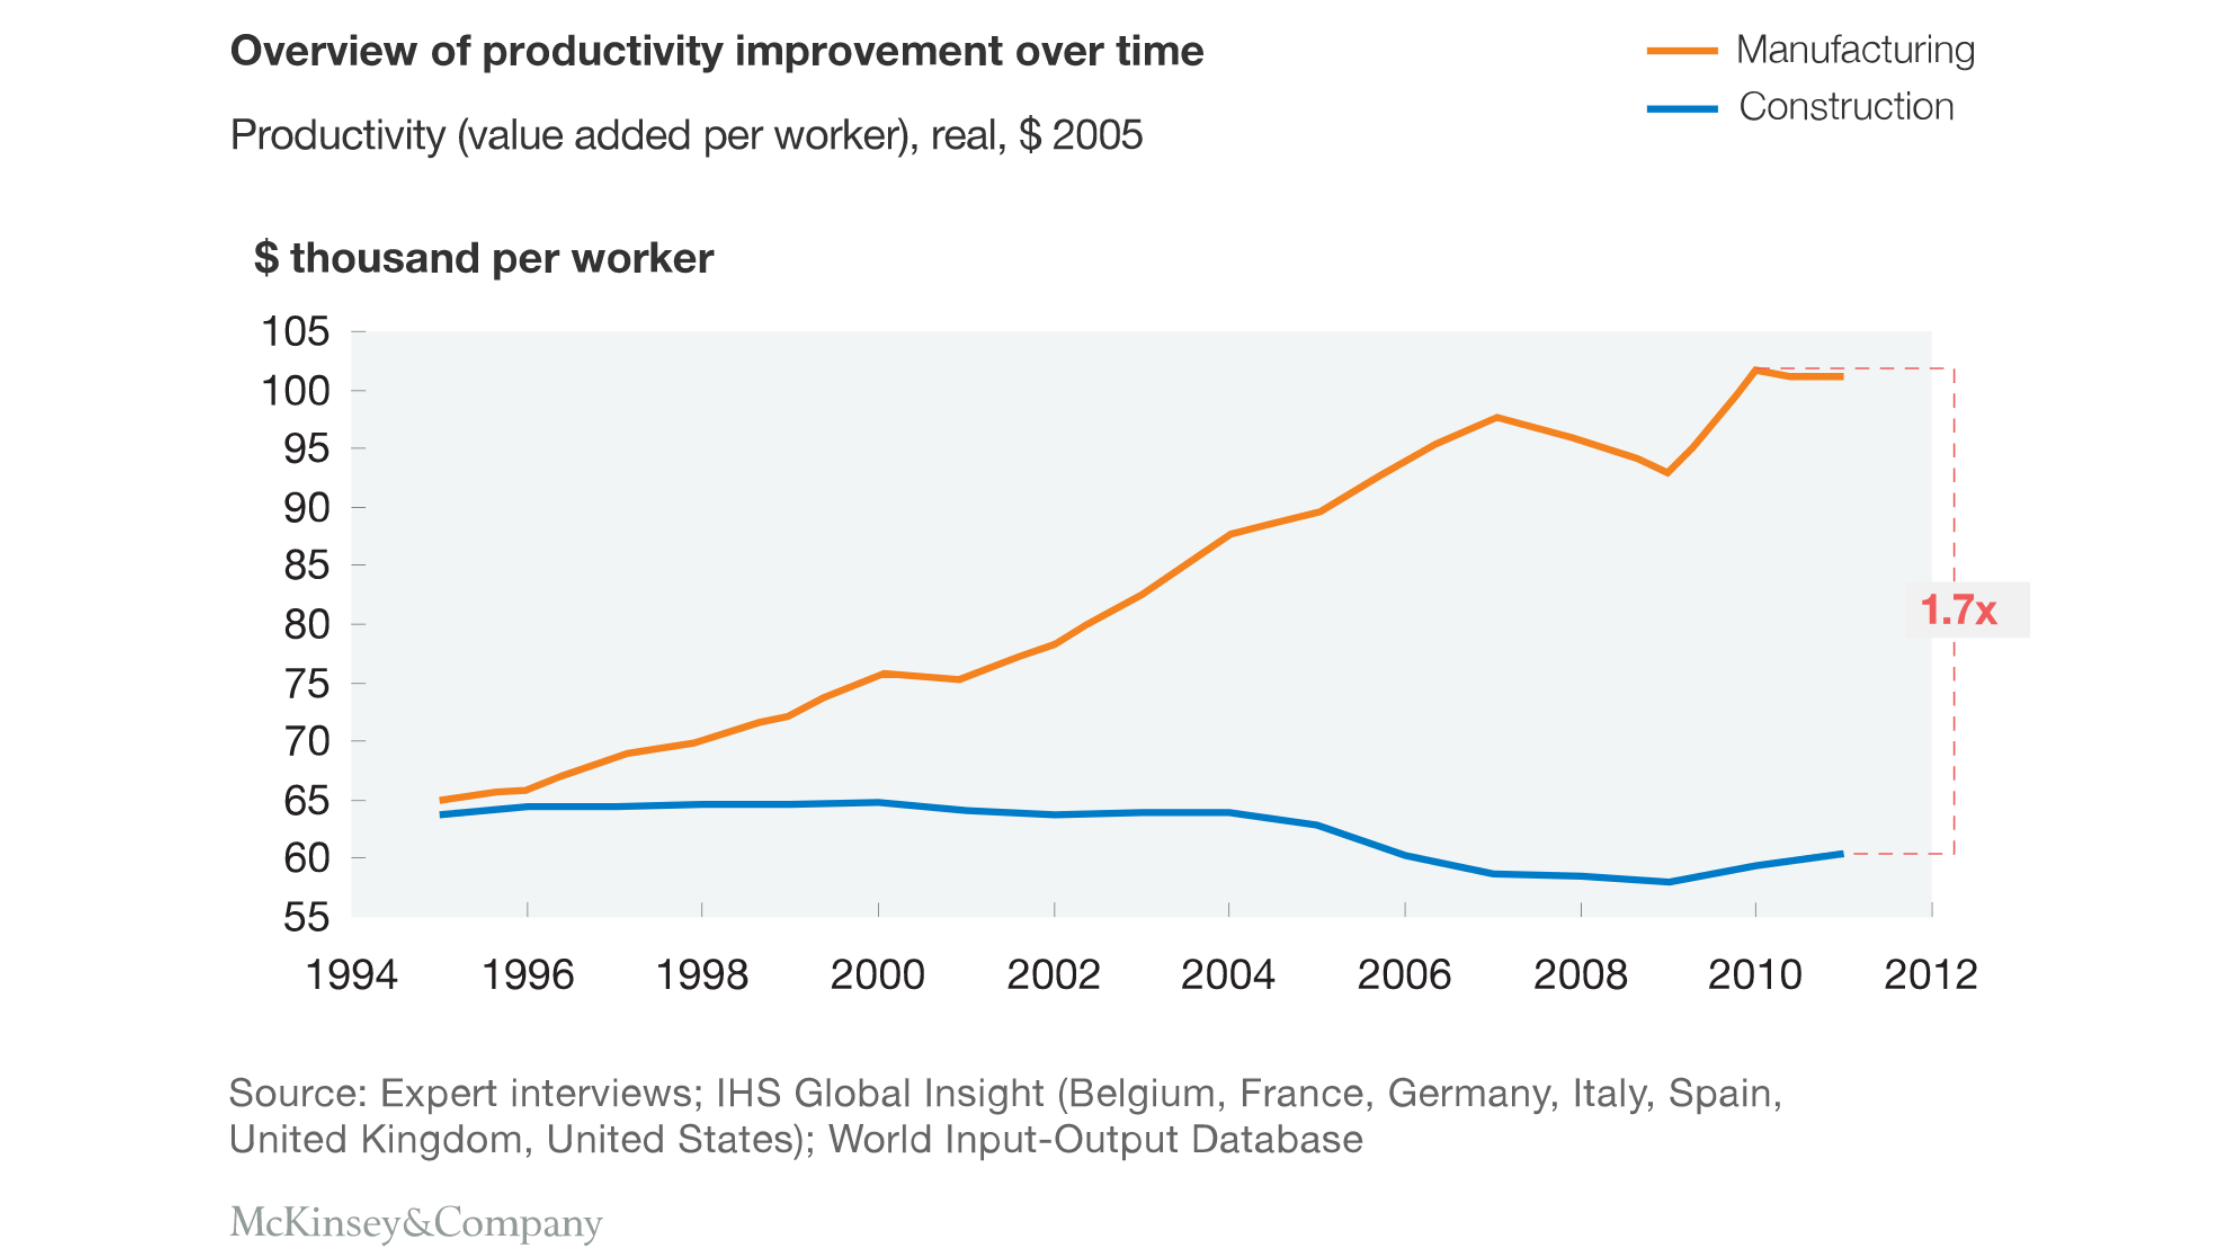 Measuring Productivity Does Not Improve Productivity